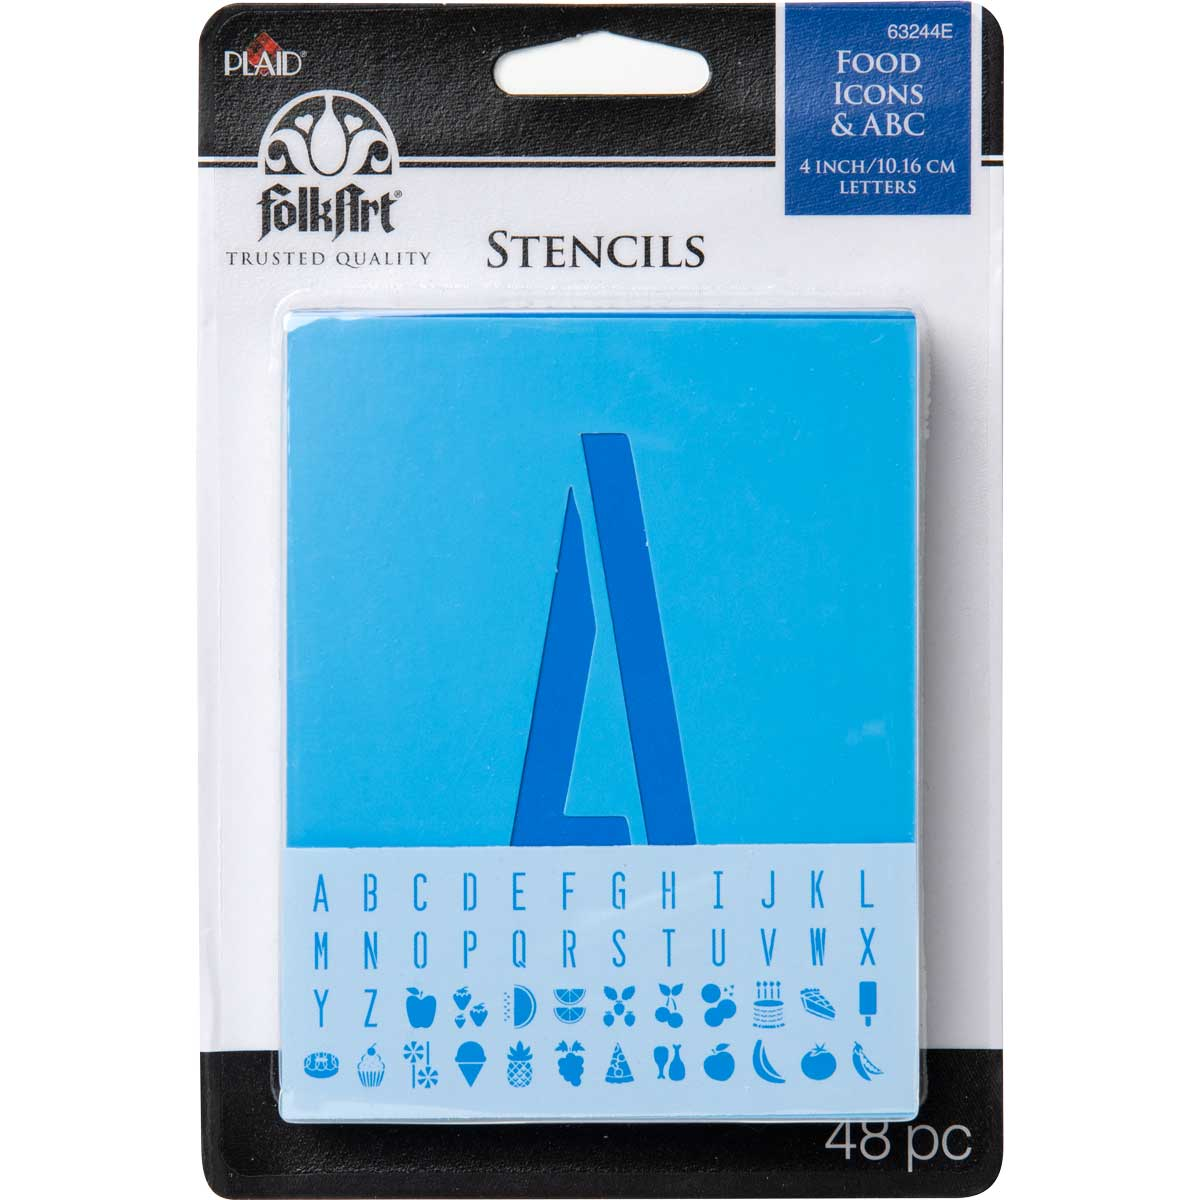 FolkArt ® Paper Stencil Value Packs - Food Alphabet and Icons - 63244E